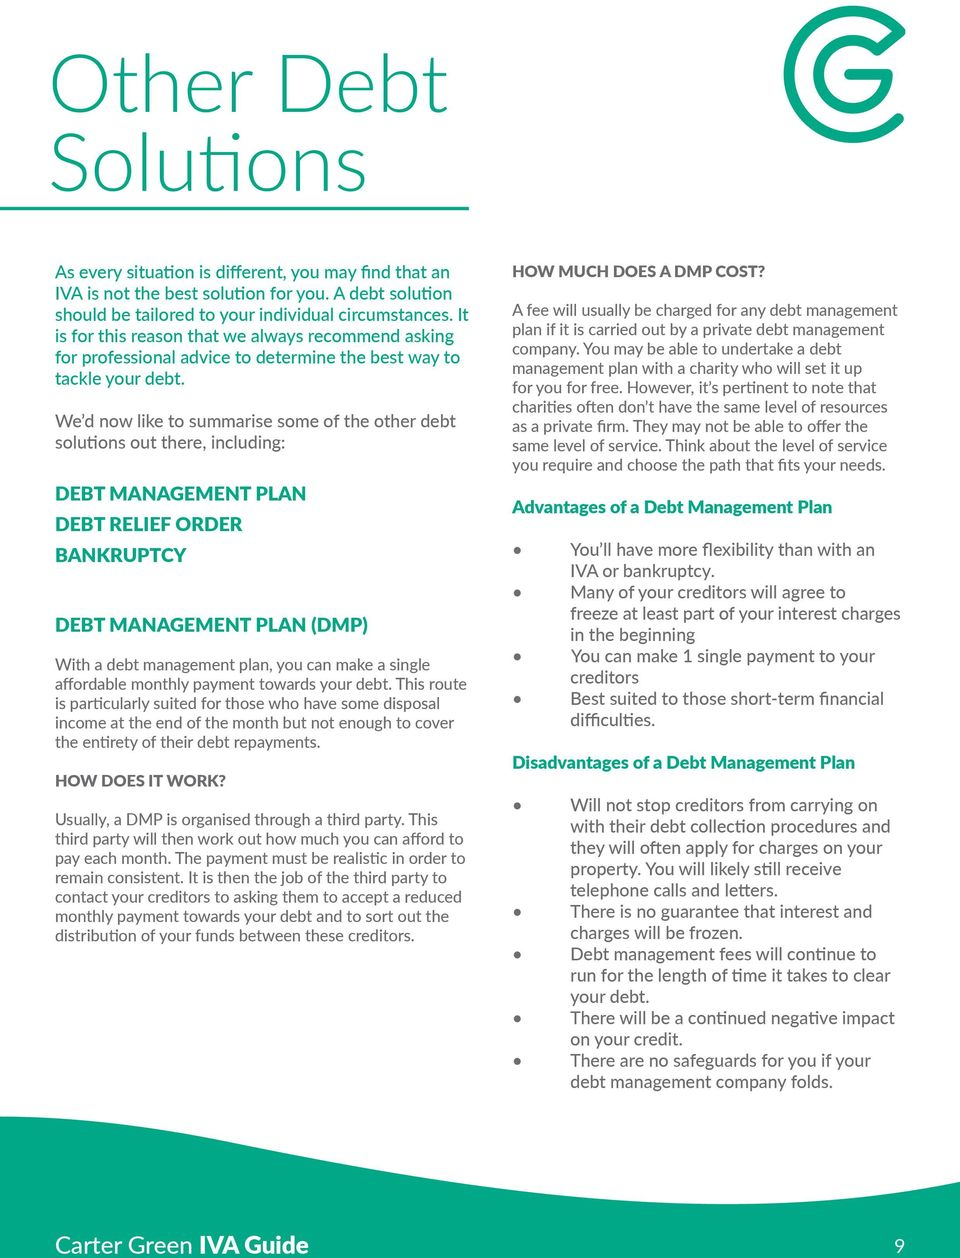 We d now like to summarise some of the other debt solutions out there, including: DEBT MANAGEMENT PLAN DEBT RELIEF ORDER BANKRUPTCY DEBT MANAGEMENT PLAN (DMP) With a debt management plan, you can